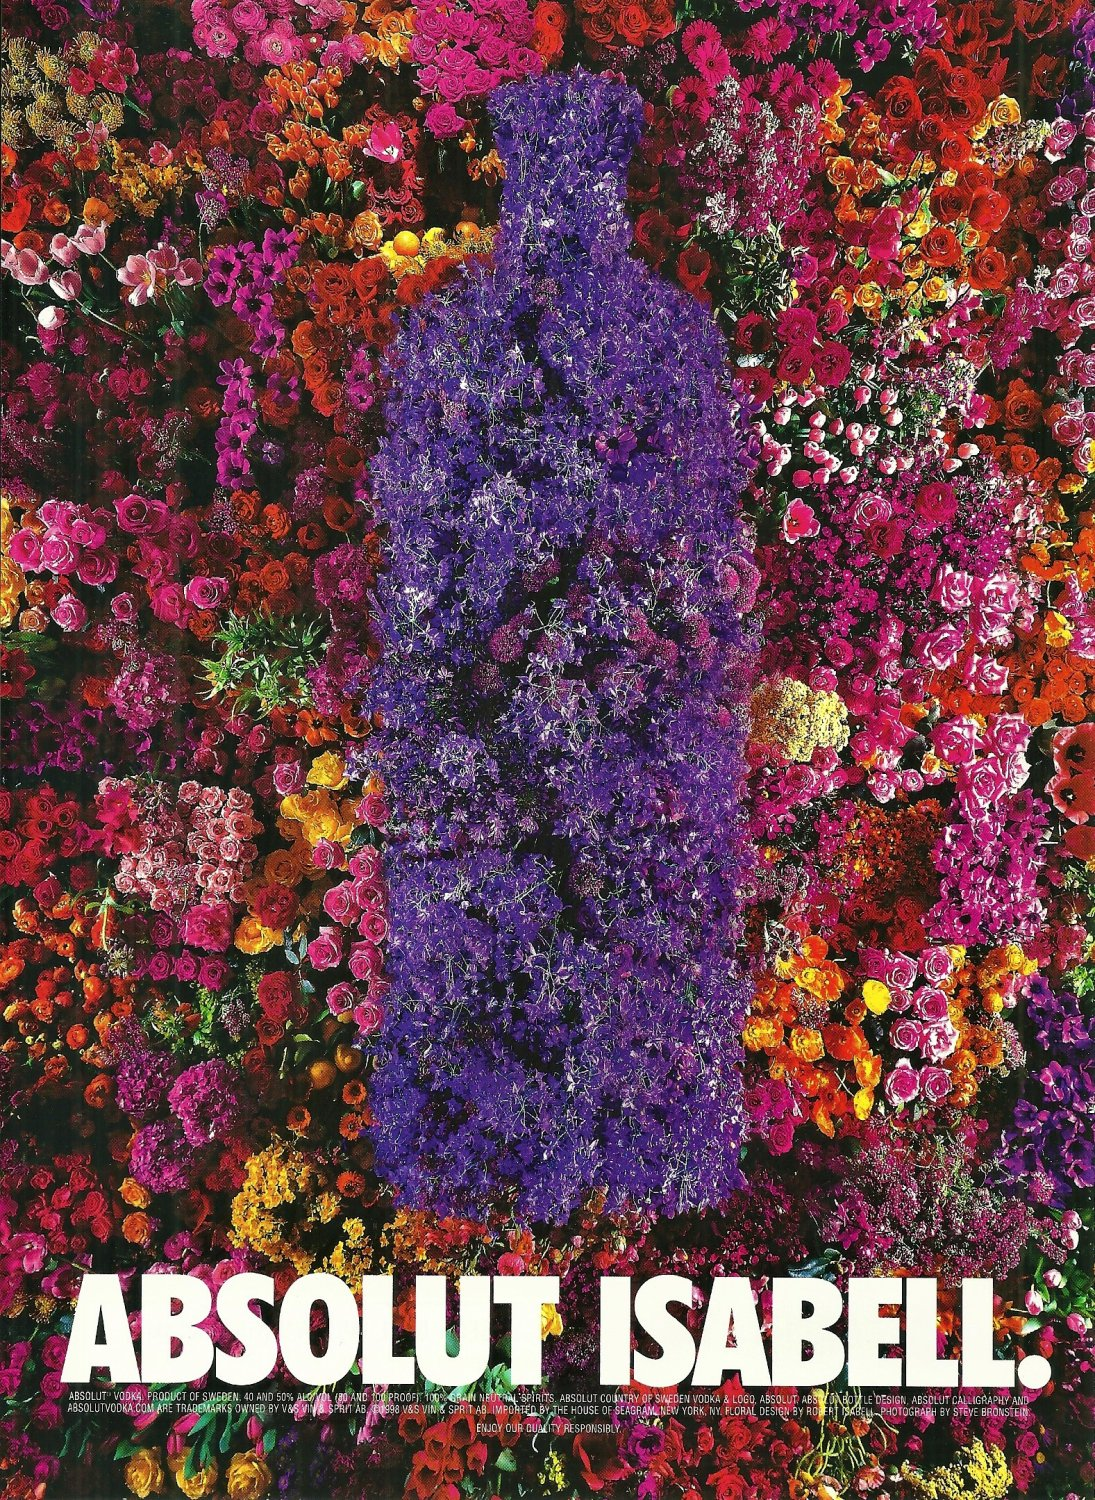 ABSOLUT ISABELL Vodka Magazine Ad w/ Floral Design by Robert Isabell